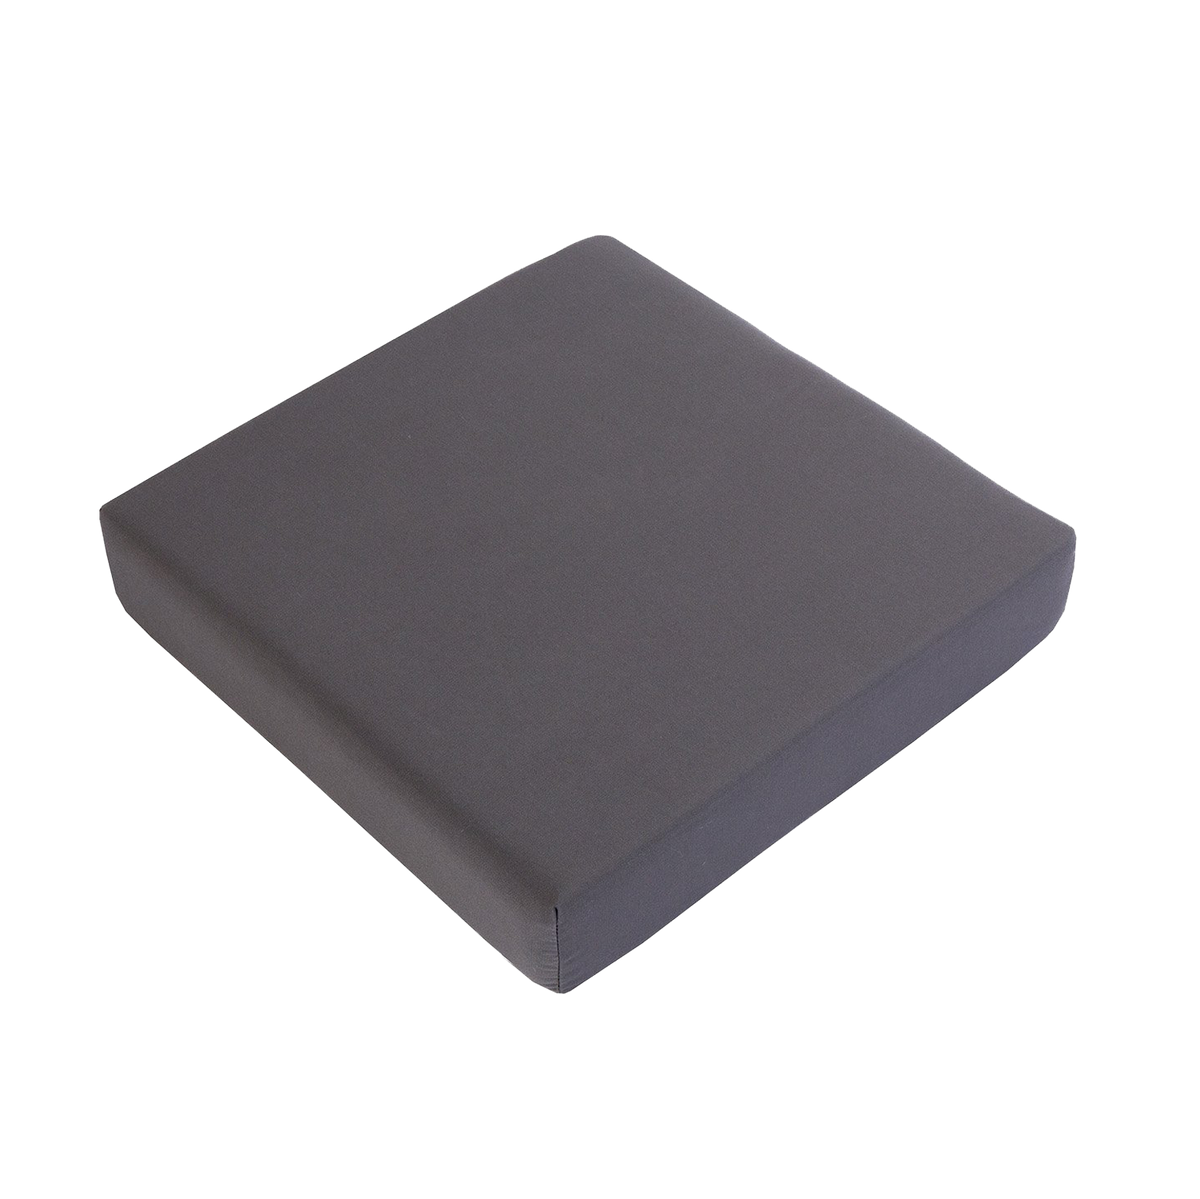 Molded Base Form-Fitting Cushion